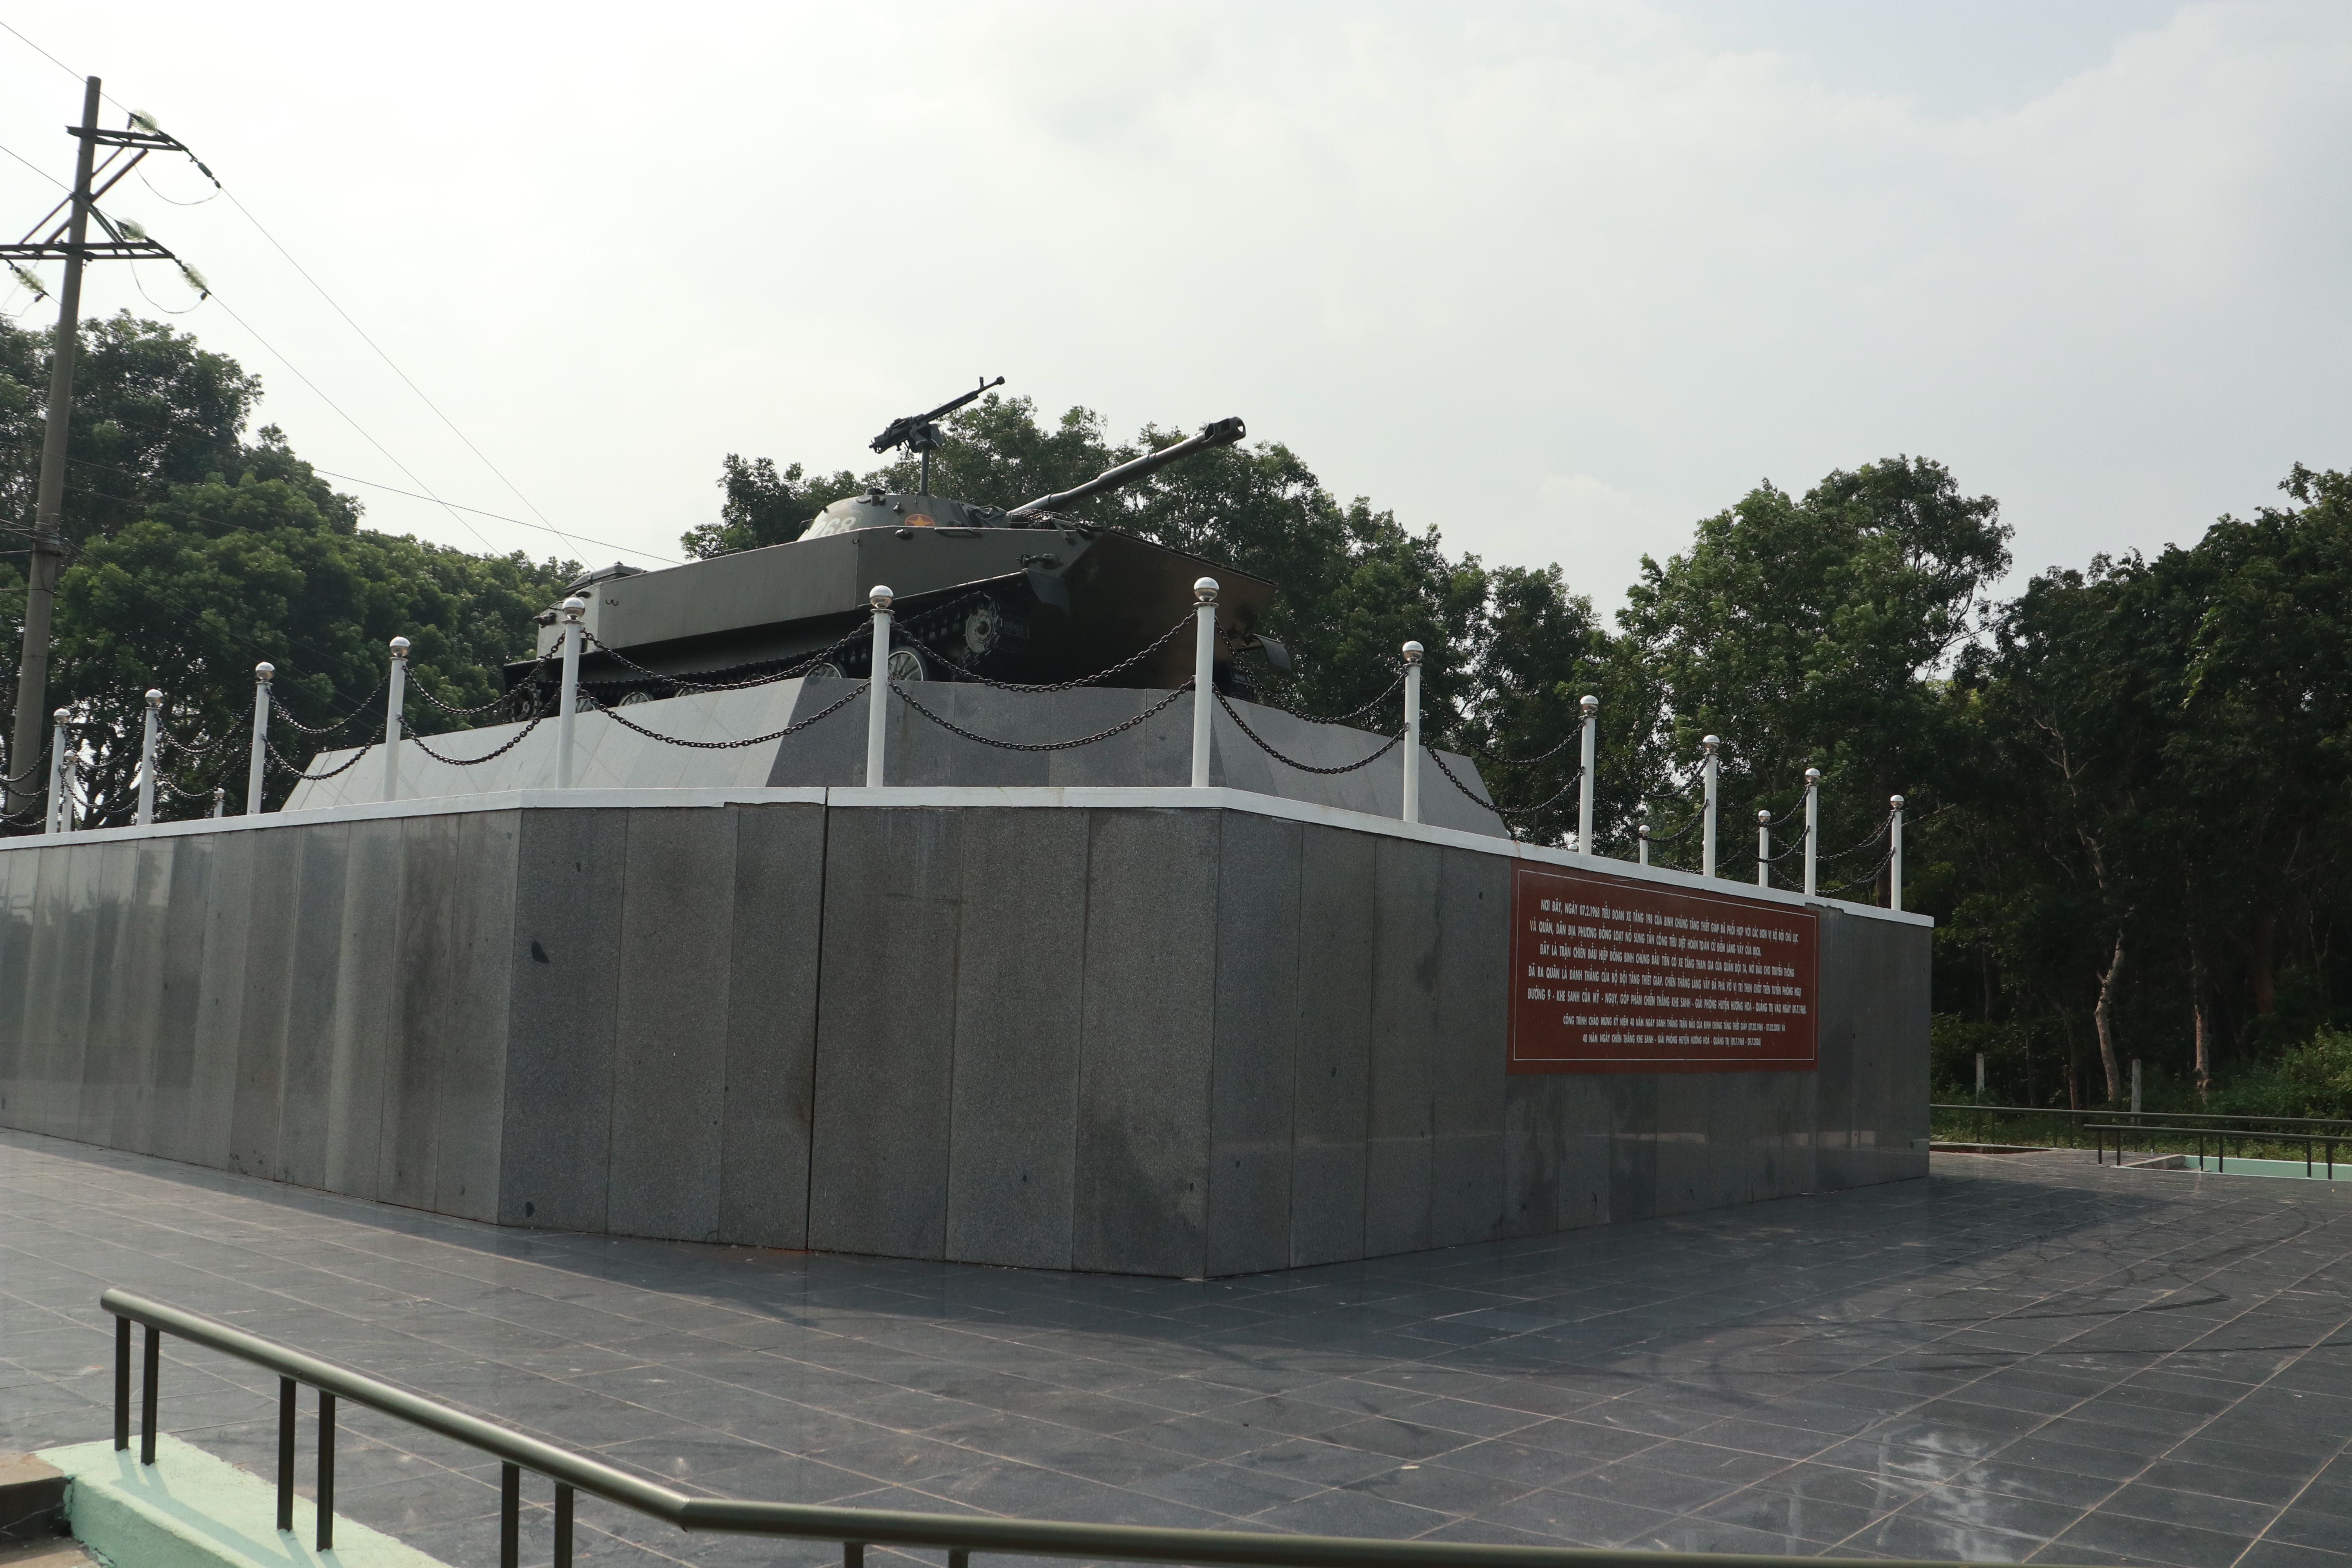 Lang Vei Special Forces Camp PT-76 monument